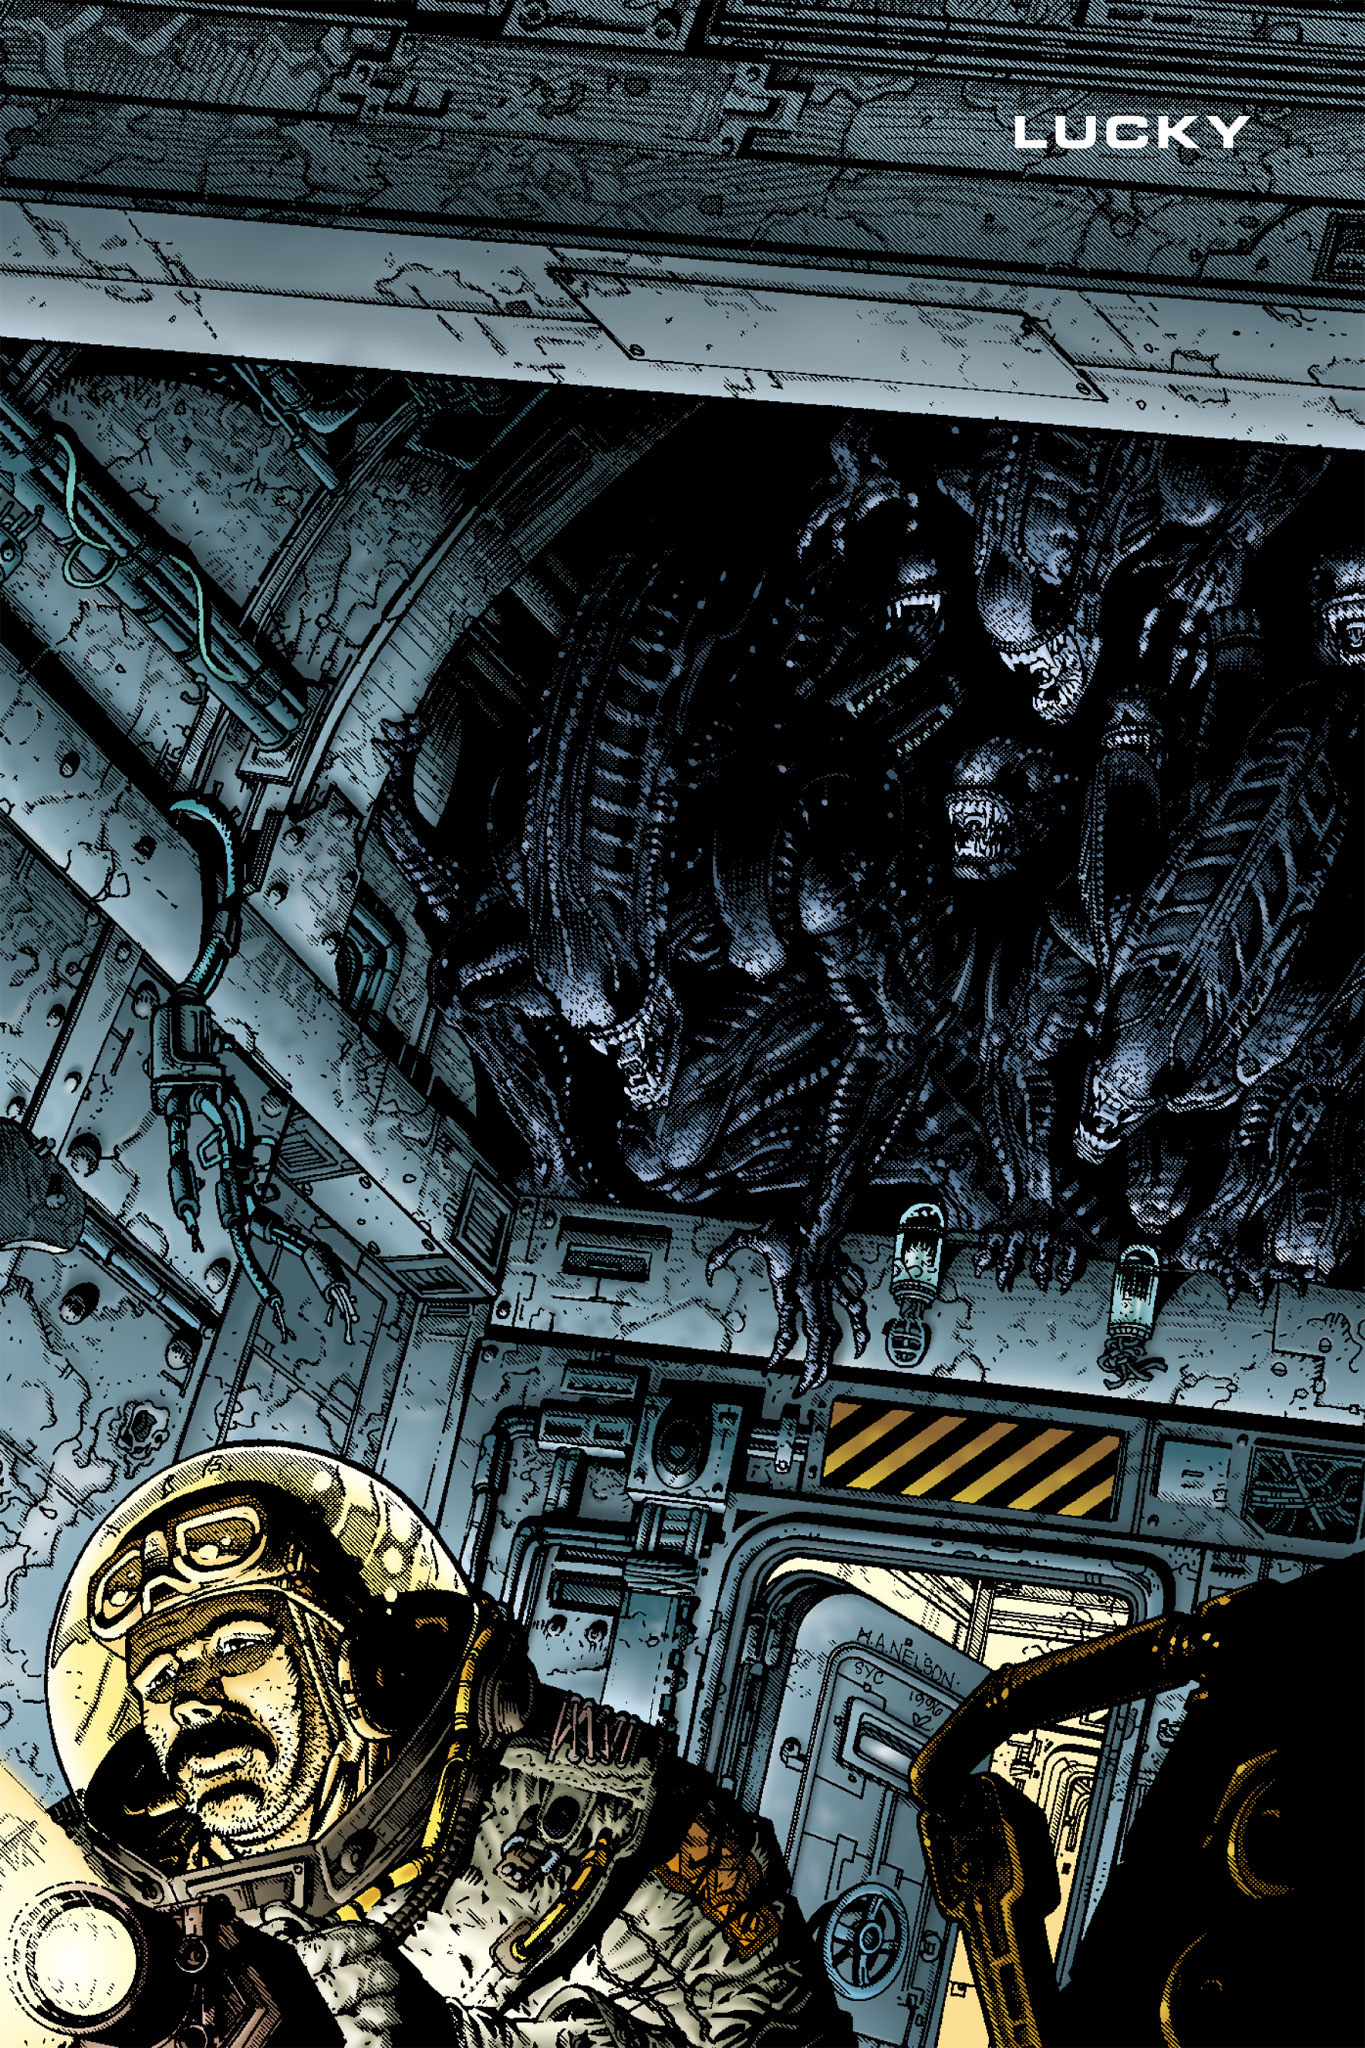 Read online Aliens: Incubation/Lucky/Taste comic -  Issue # Full - 16